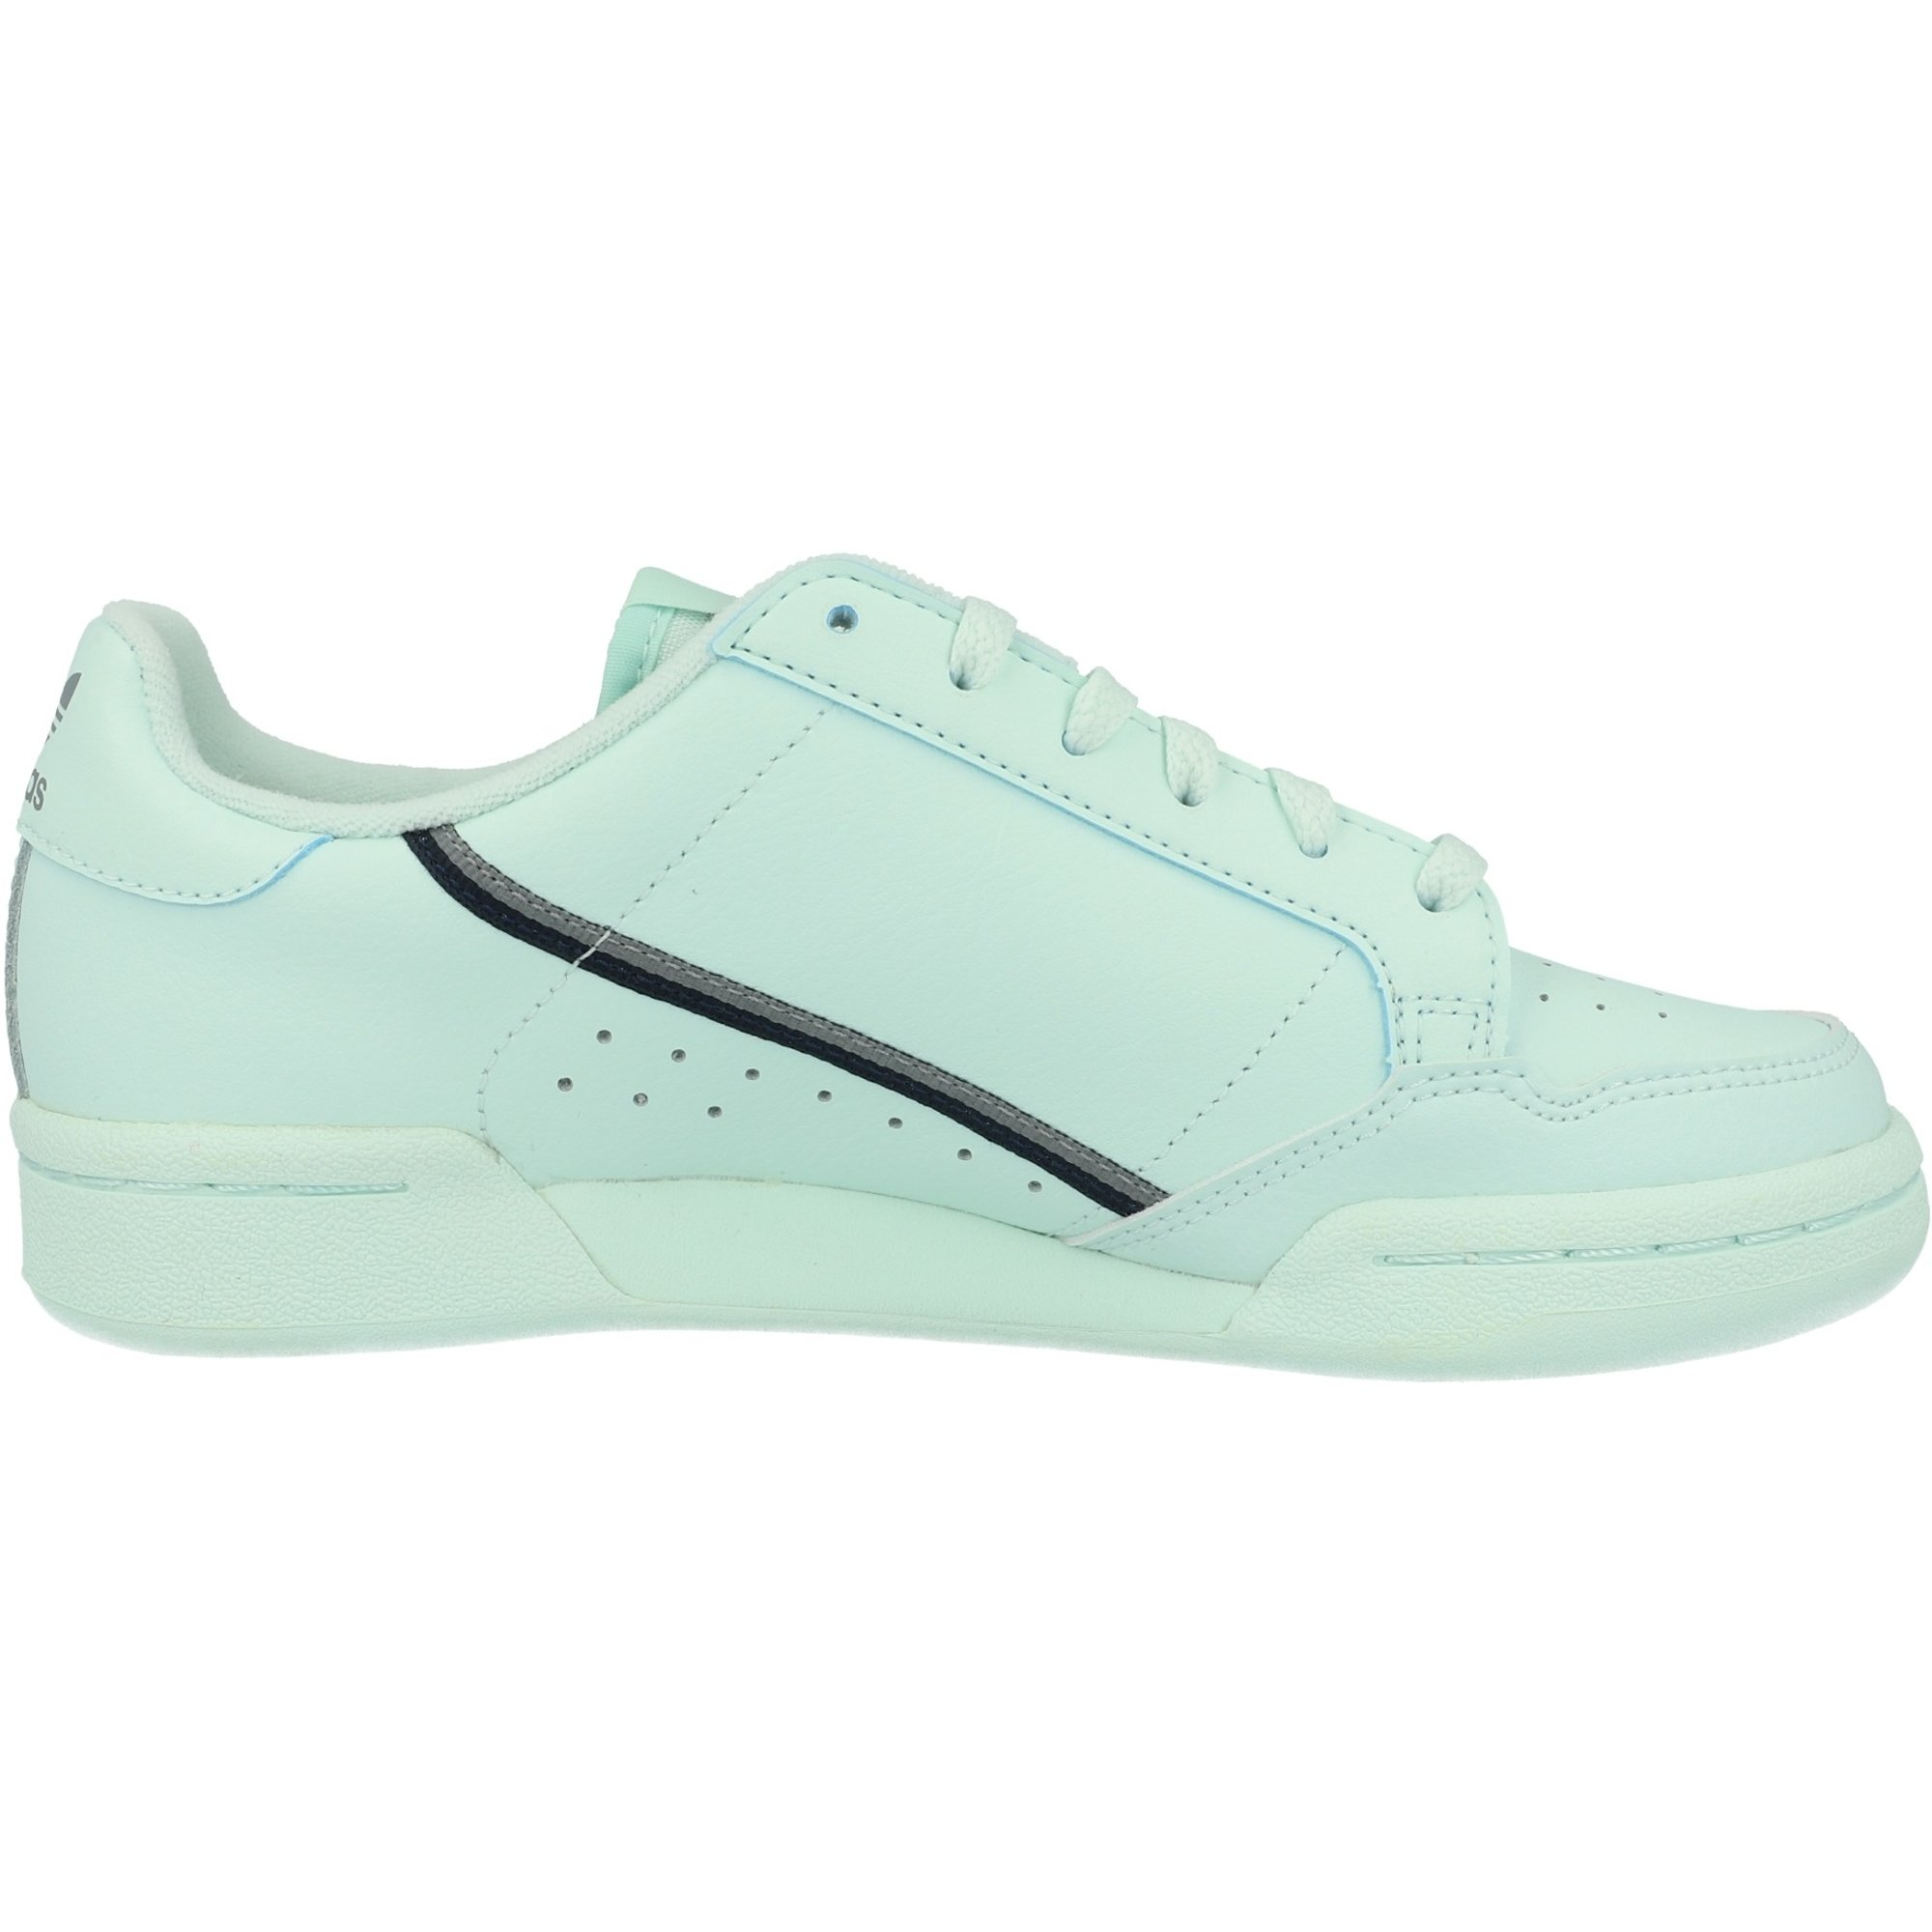 adidas Originals Continental 80 J Ice Mint Leather Youth